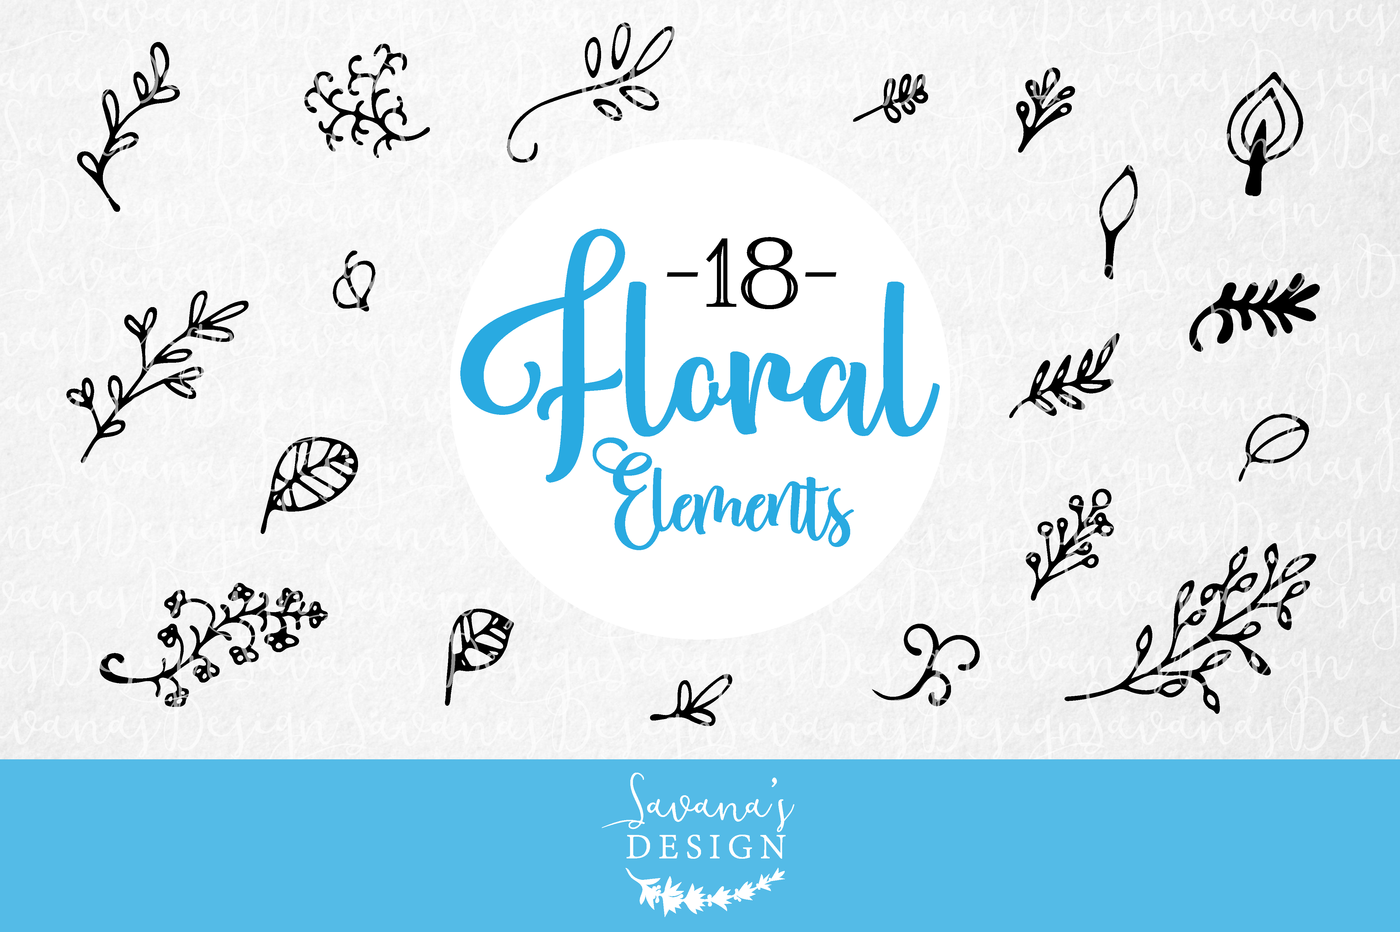 Svg Element Bundle Svg Swirls Swirls Svg Svg Borders Doodles